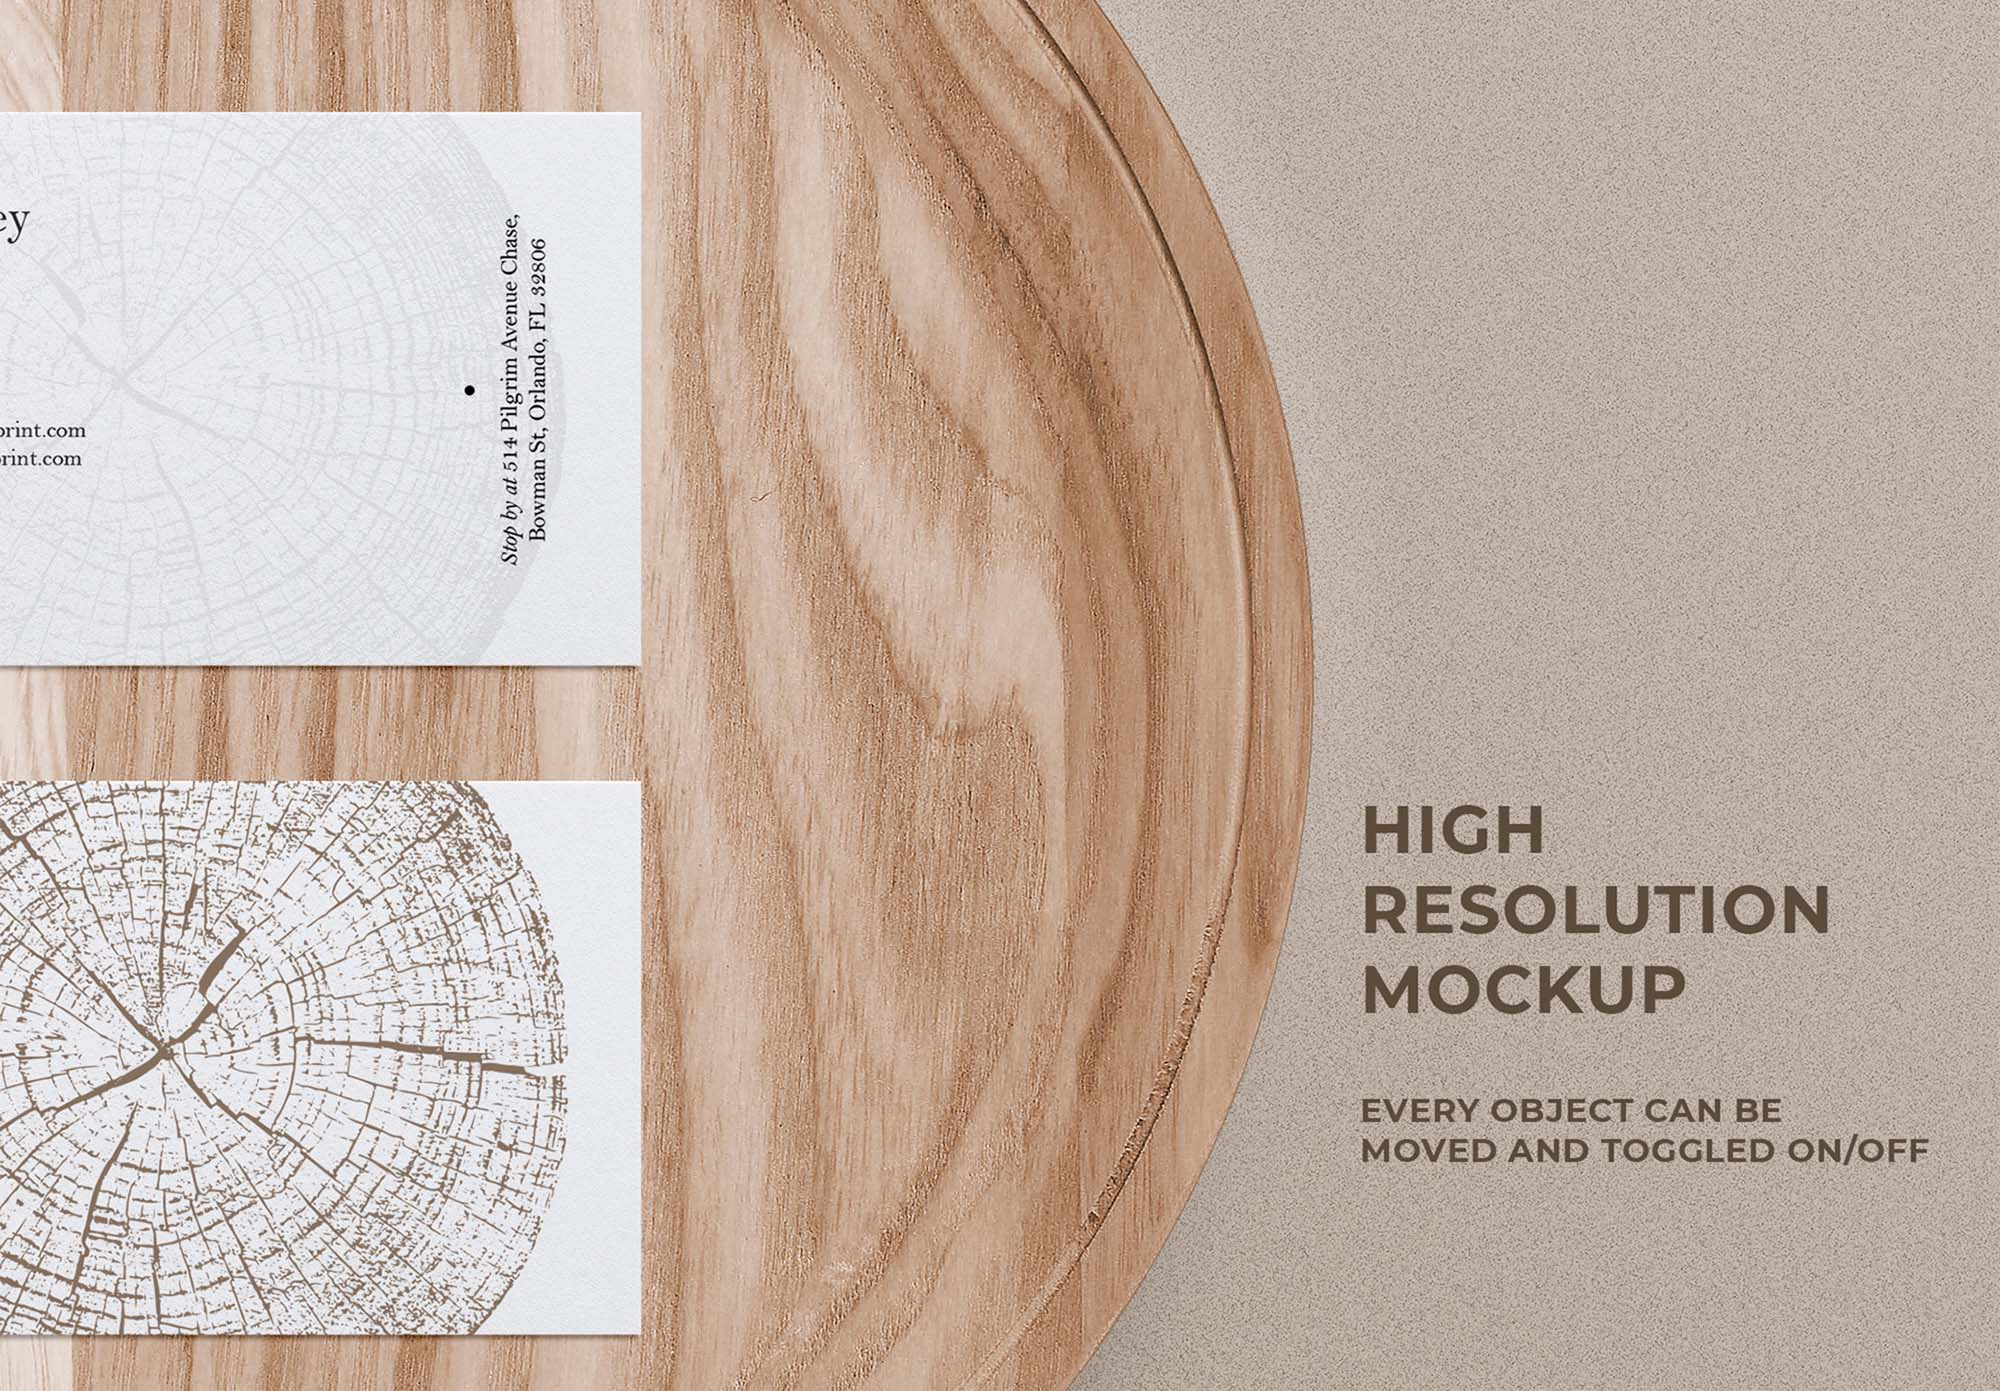 Business Card Mockup on Wooden Tray 3